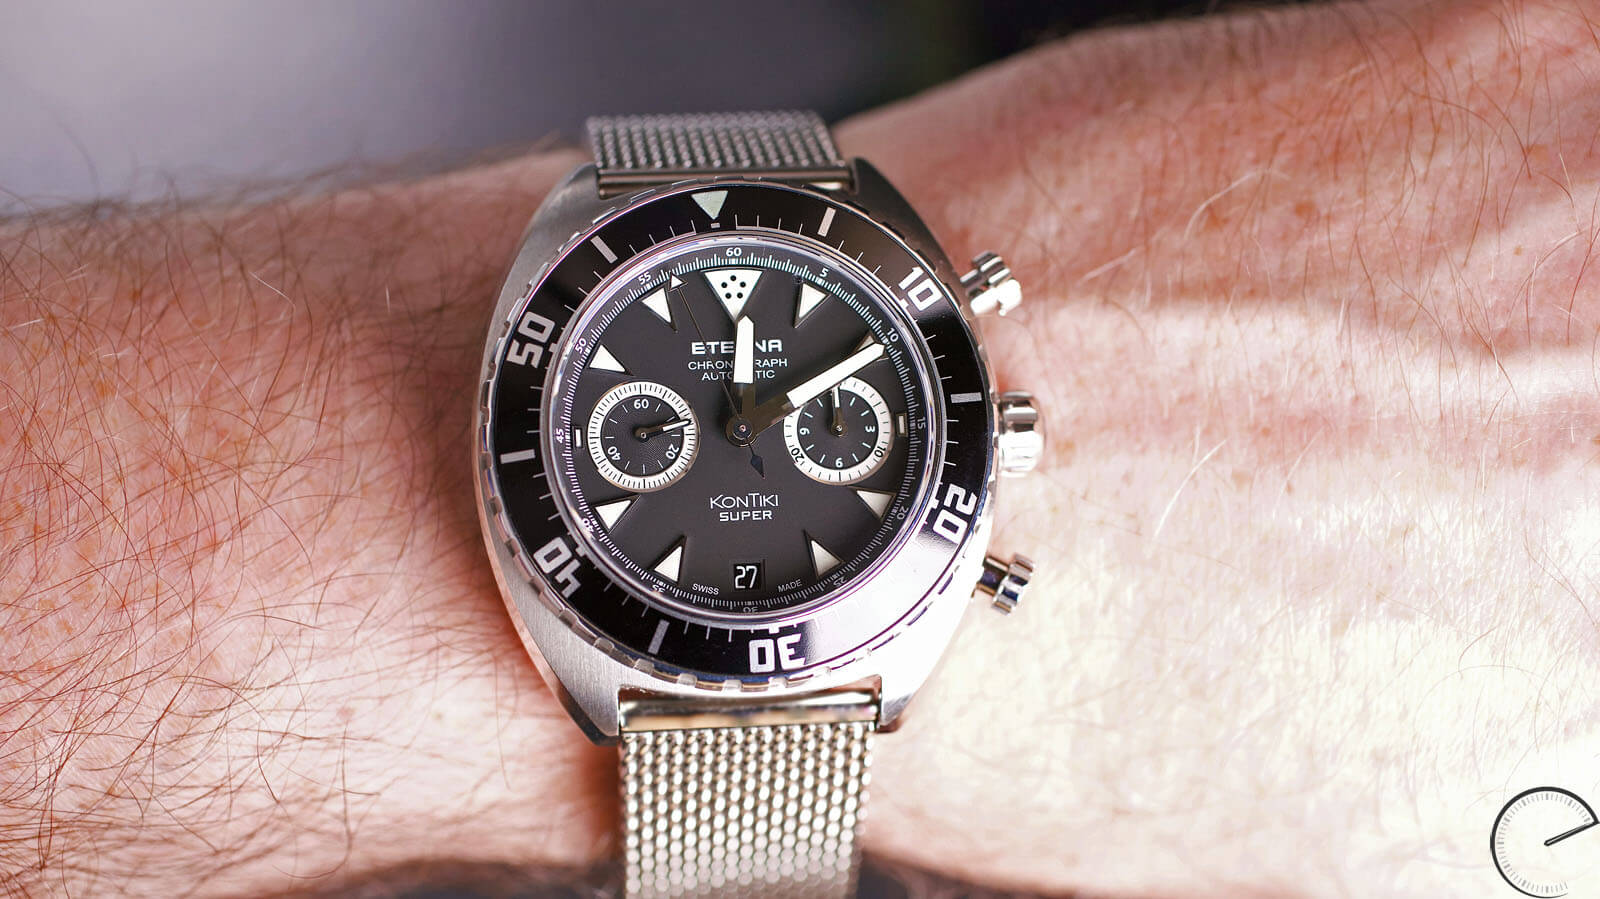 Image of Eterna Super Kontiki Chronograph